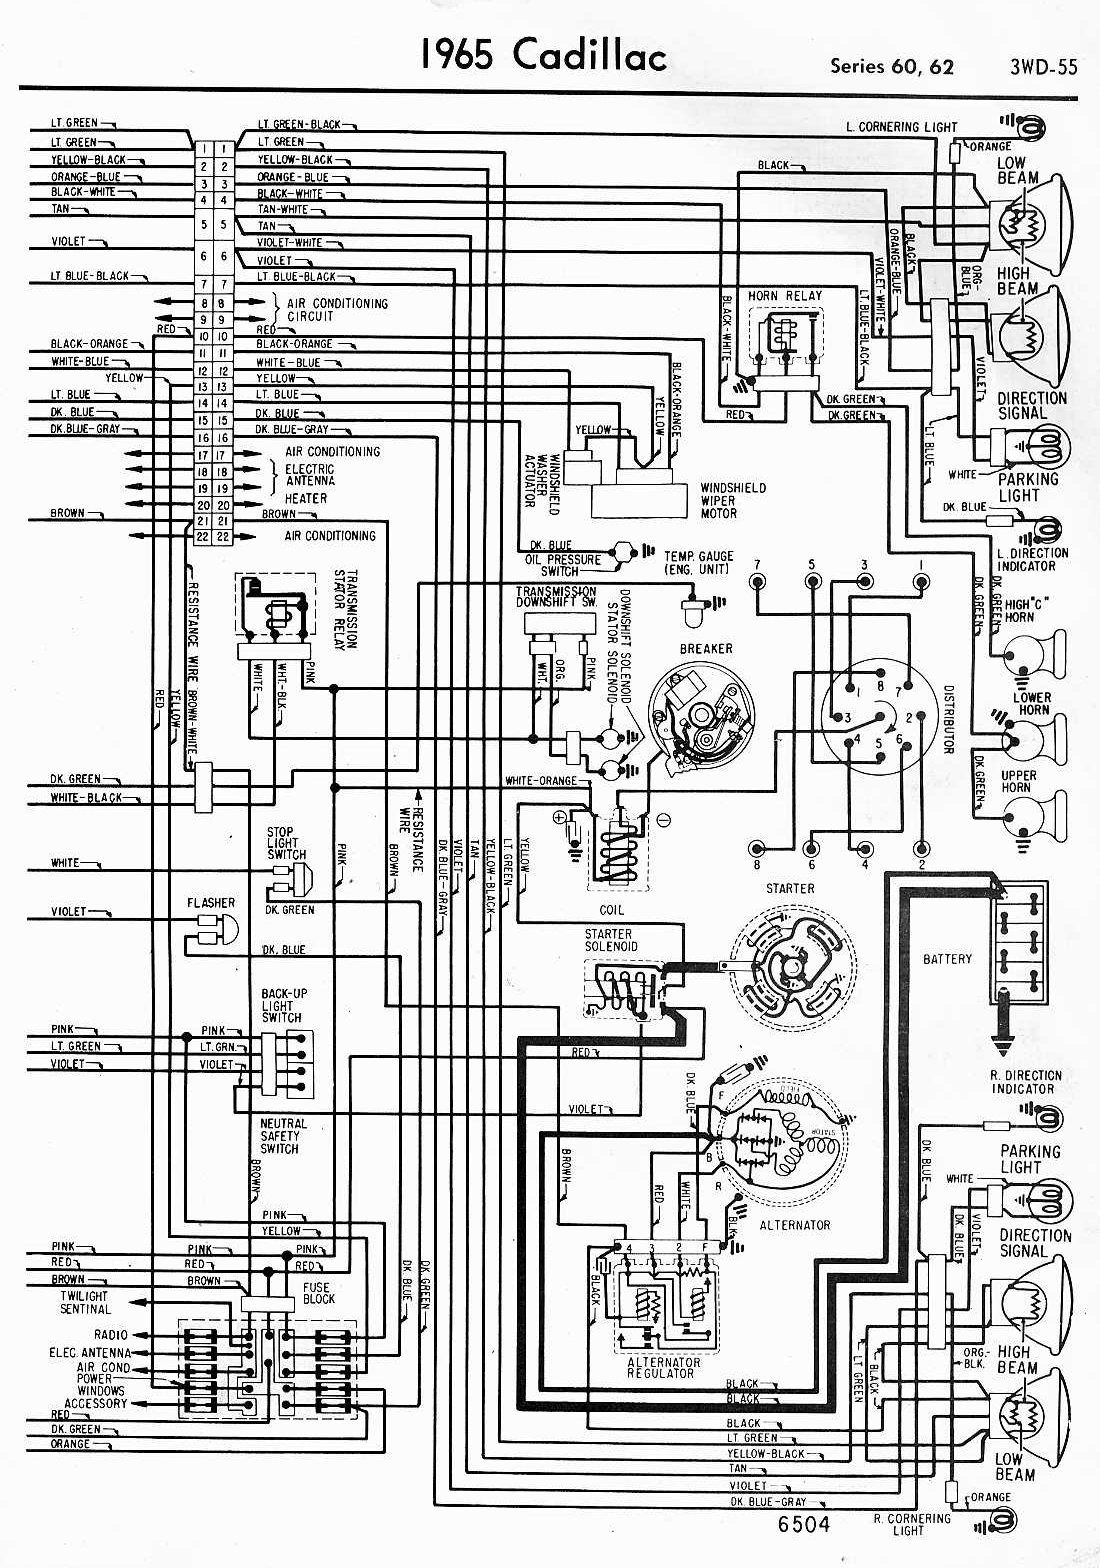 1963 Cadillac Deville Wire Diagram Wiring Resources For 1964 60 And 62 Series Part 1 Car Manuals Diagrams Fault Codes On Starter 1100x1568